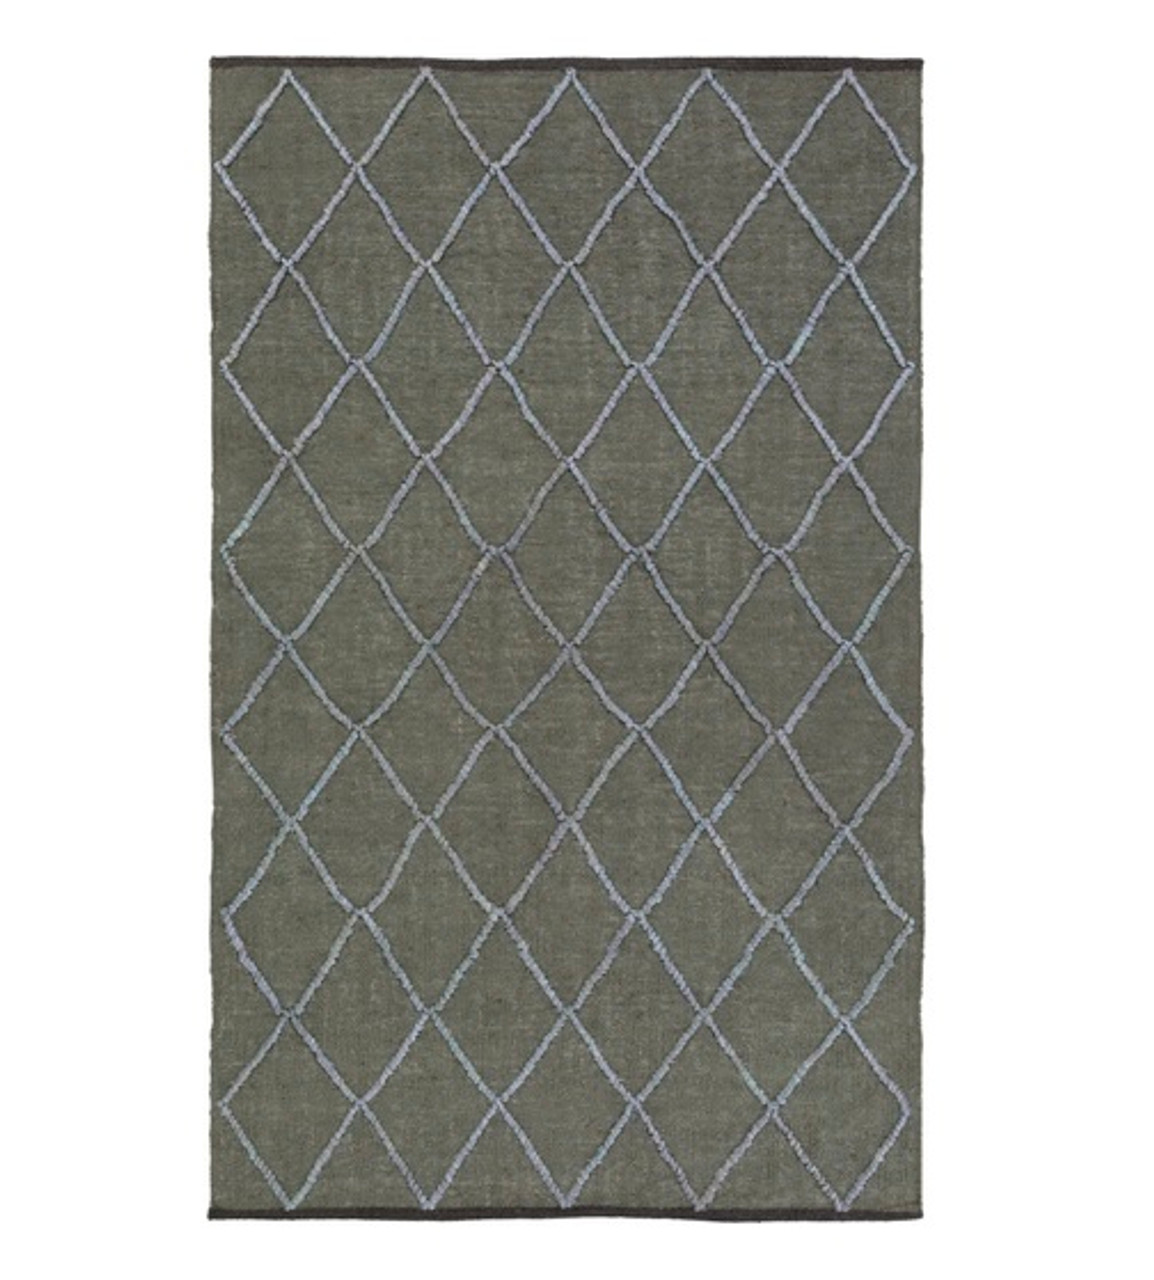 Christmas Area Rugs 8 X 10.8 X 10 Nautical Delight Bay Leaf Green And Light Cadet Blue Hand Woven Area Throw Rug 32212149